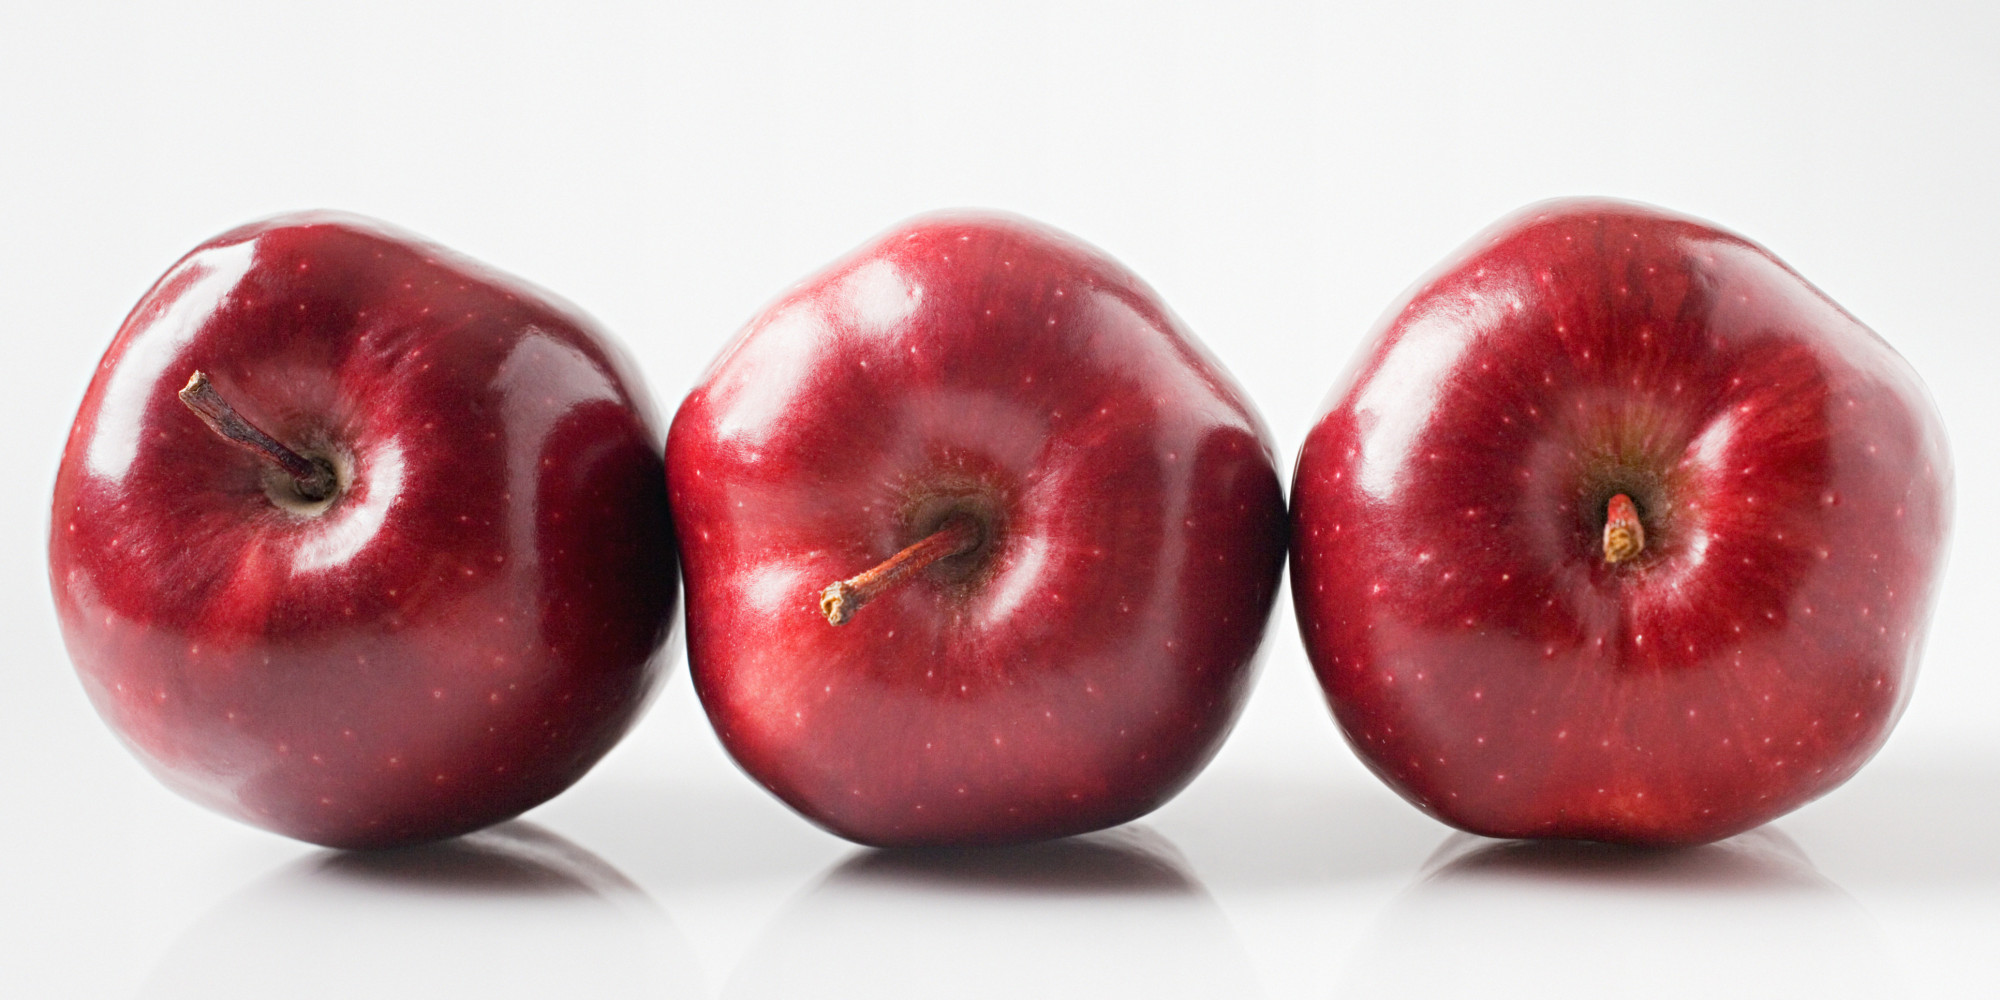 I Wish Red Delicious Apples Would Just Go Away